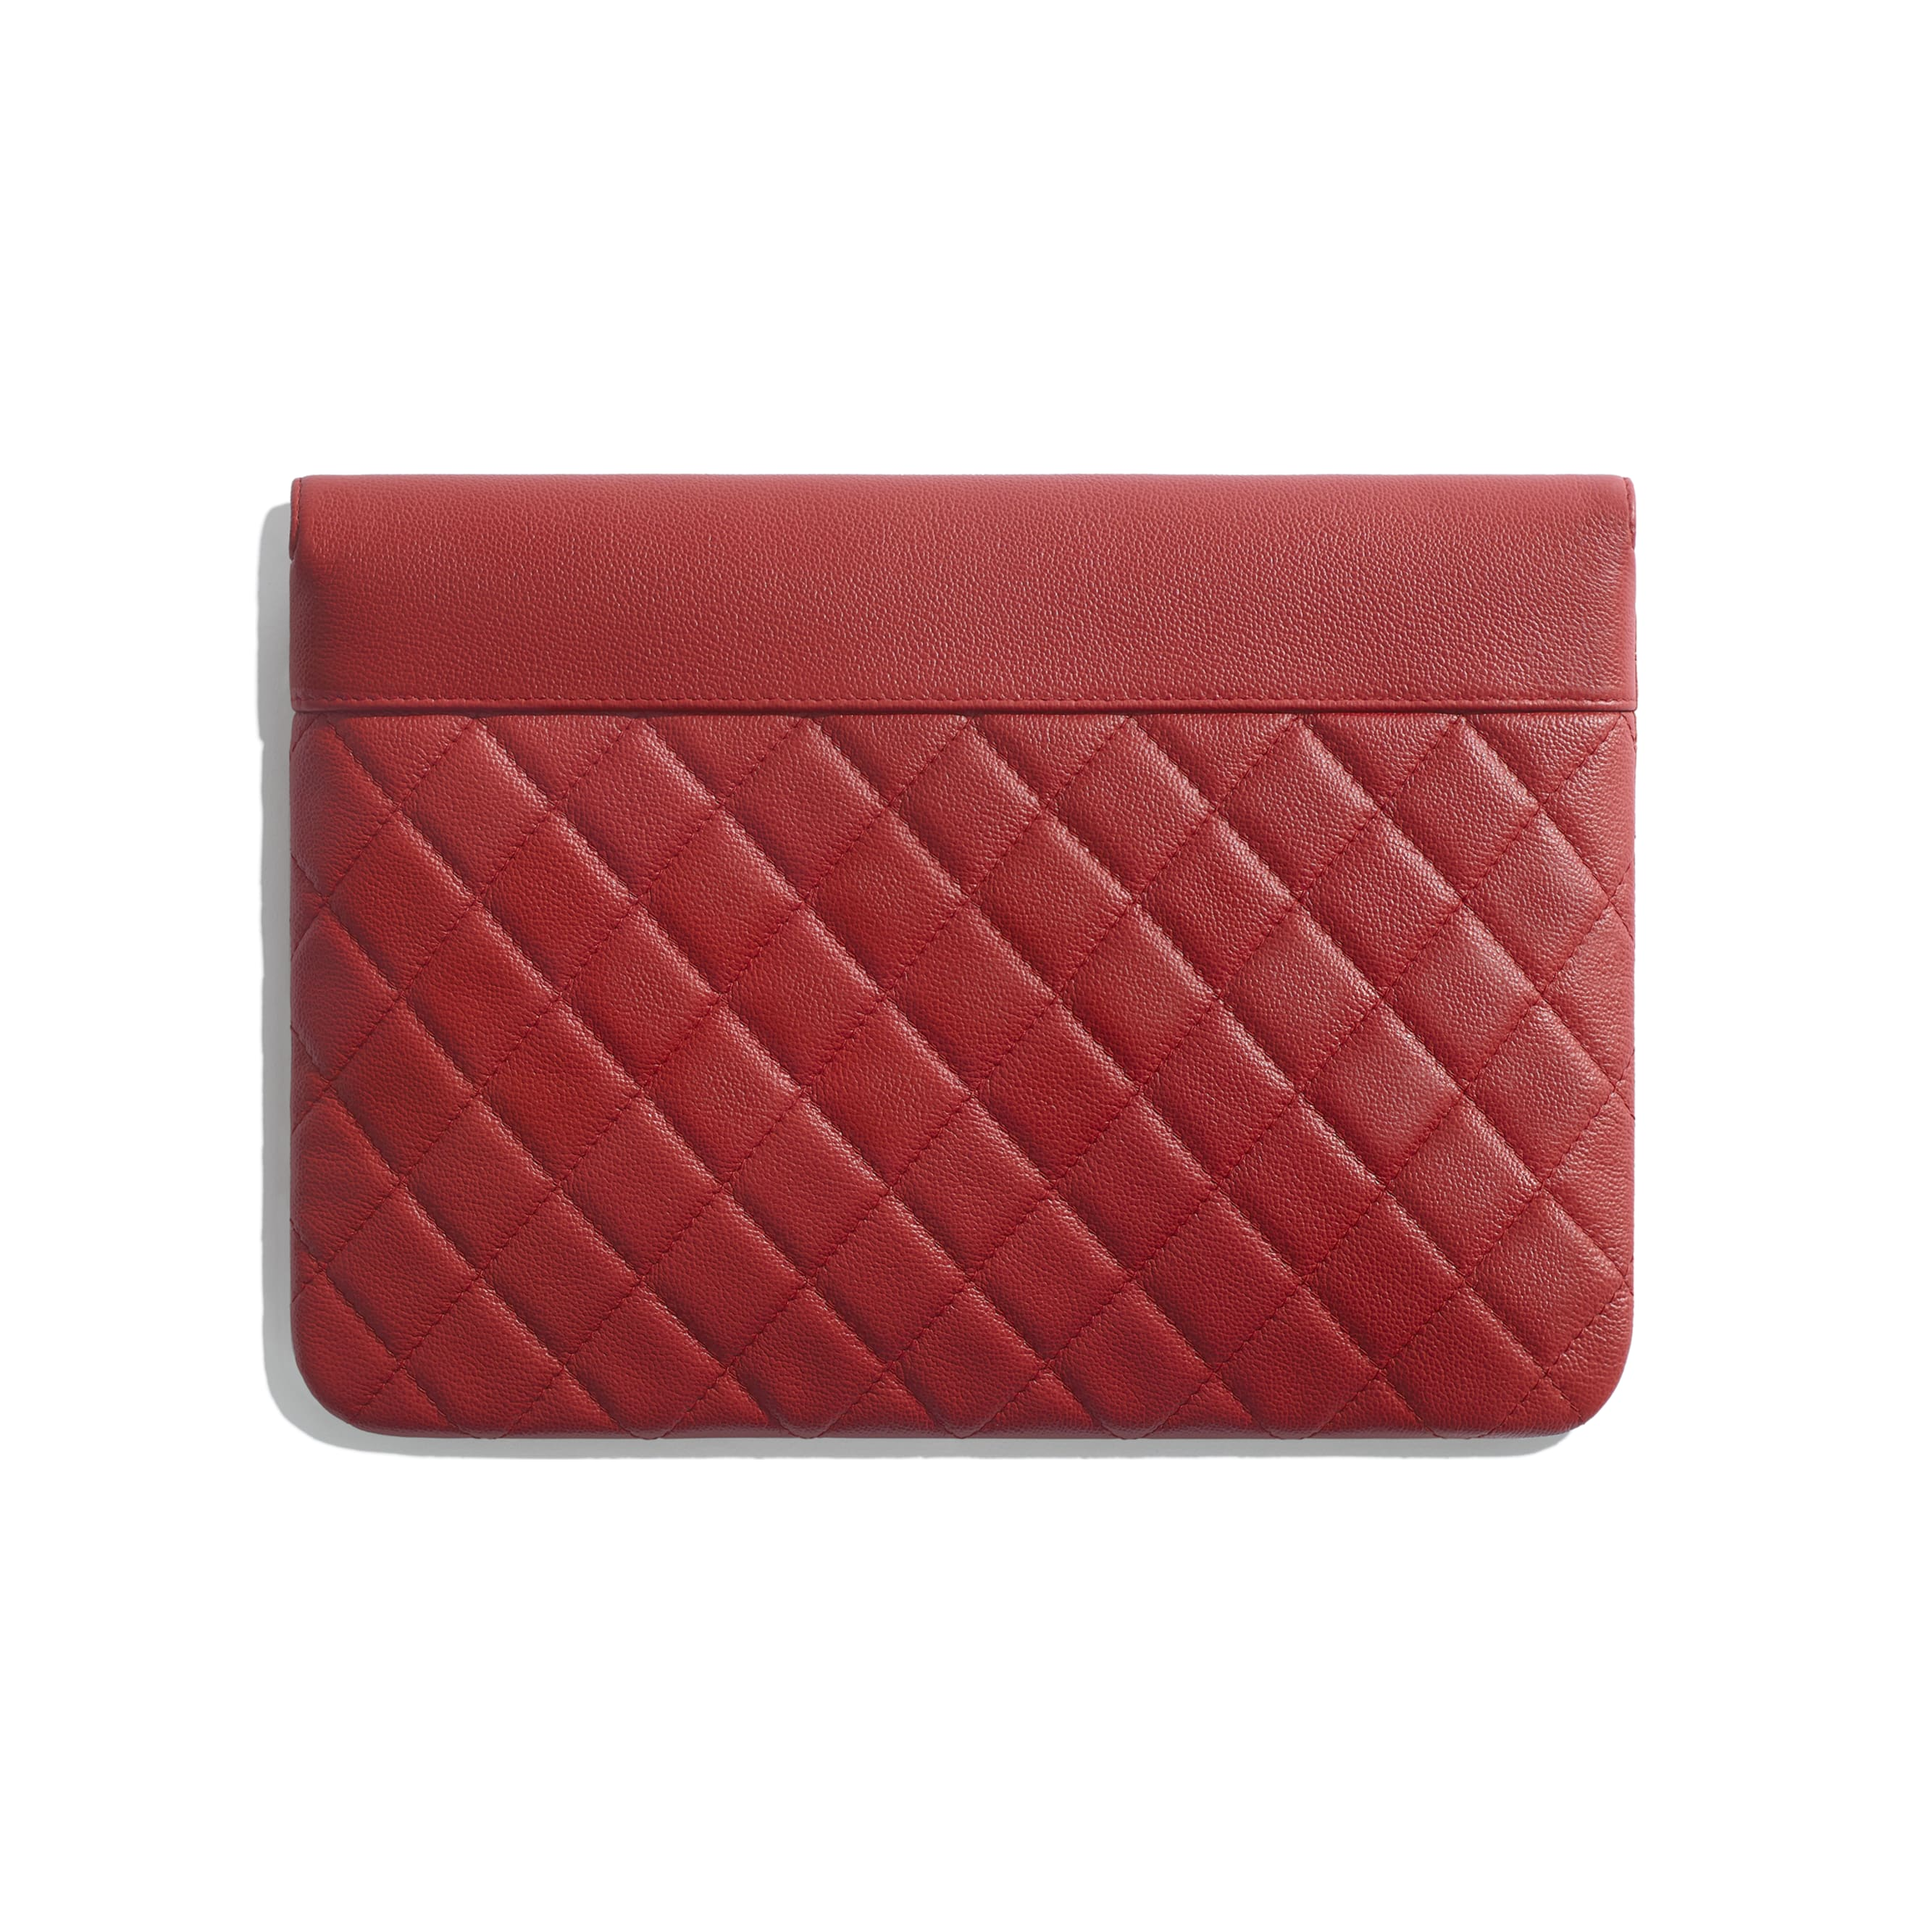 Flap Case - Red - Grained Calfskin & Silver Metal - CHANEL - Alternative view - see standard sized version